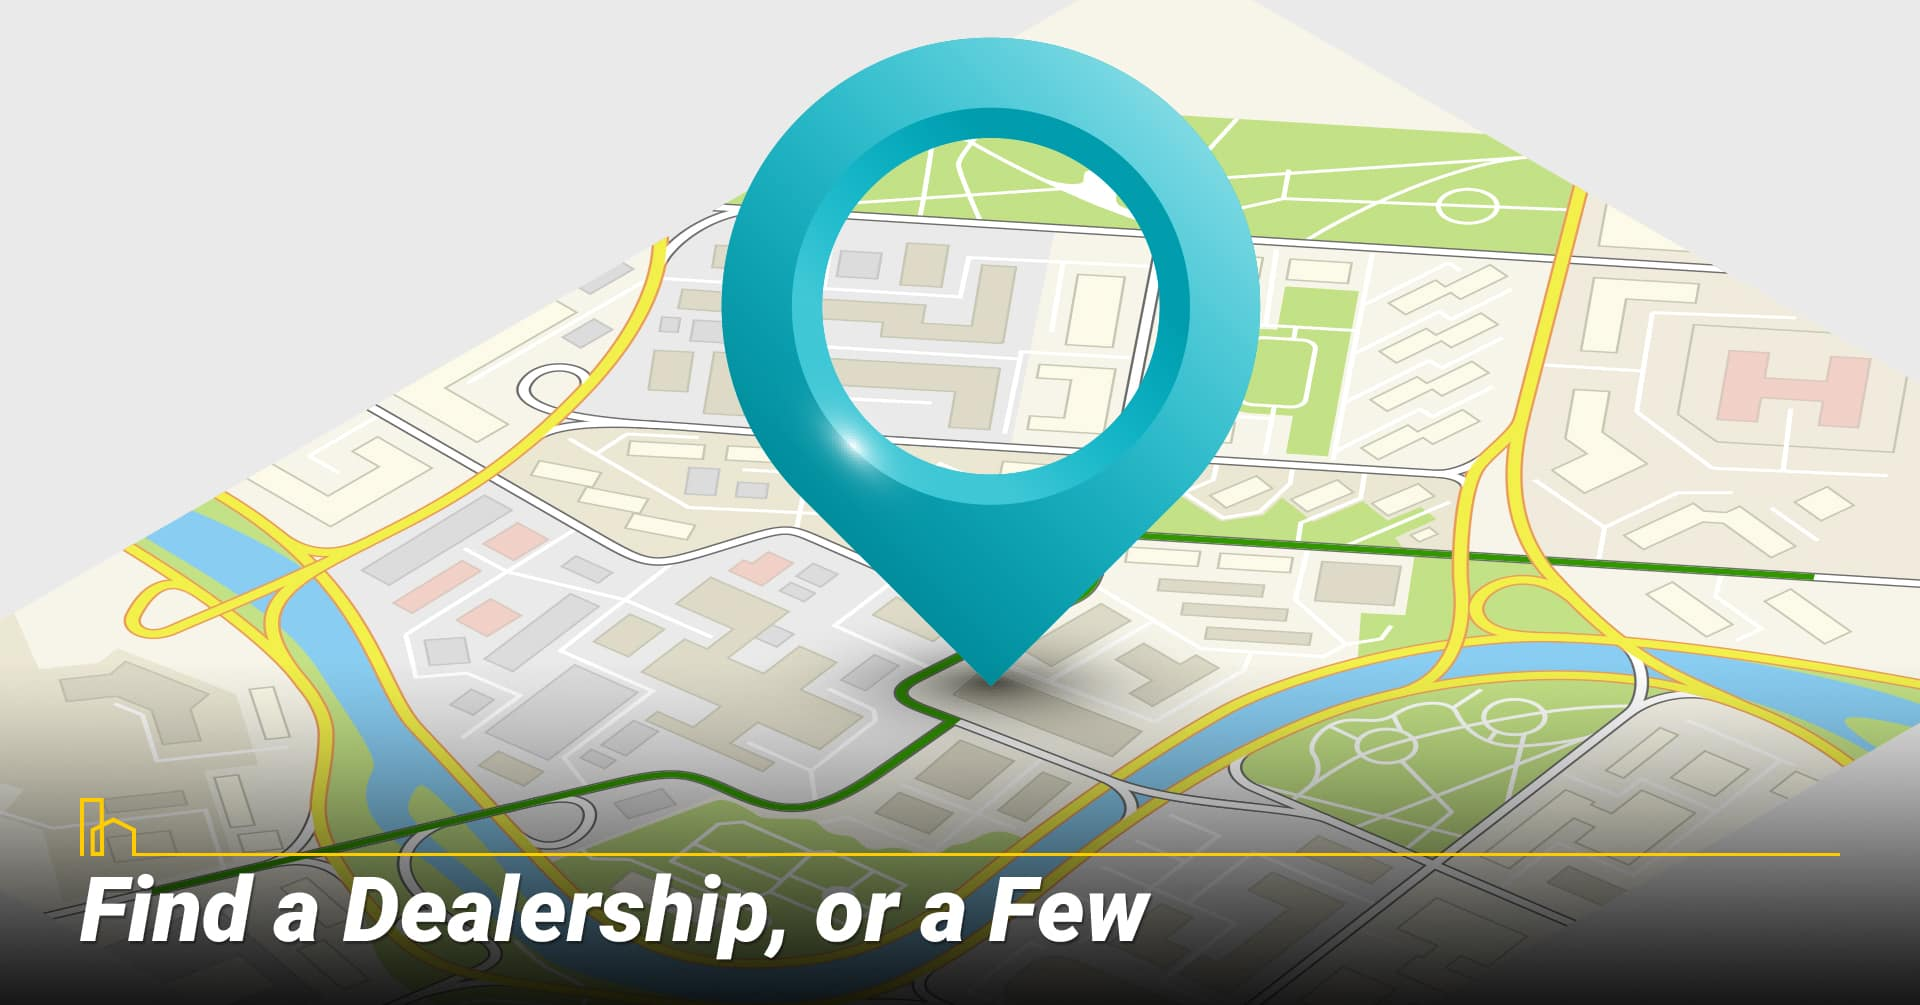 Find a Dealership, or a Few, keep your options open